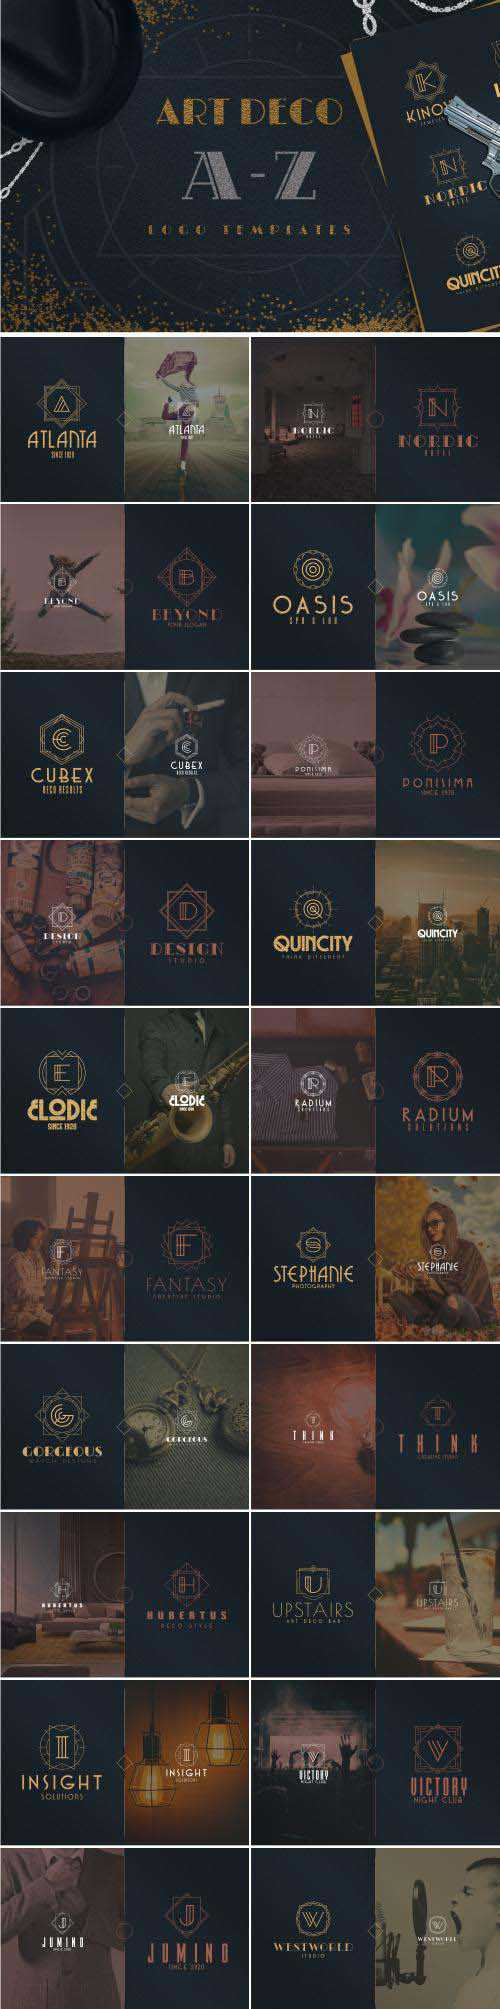 CM - Art Deco A-Z Logo Templates - 2112845